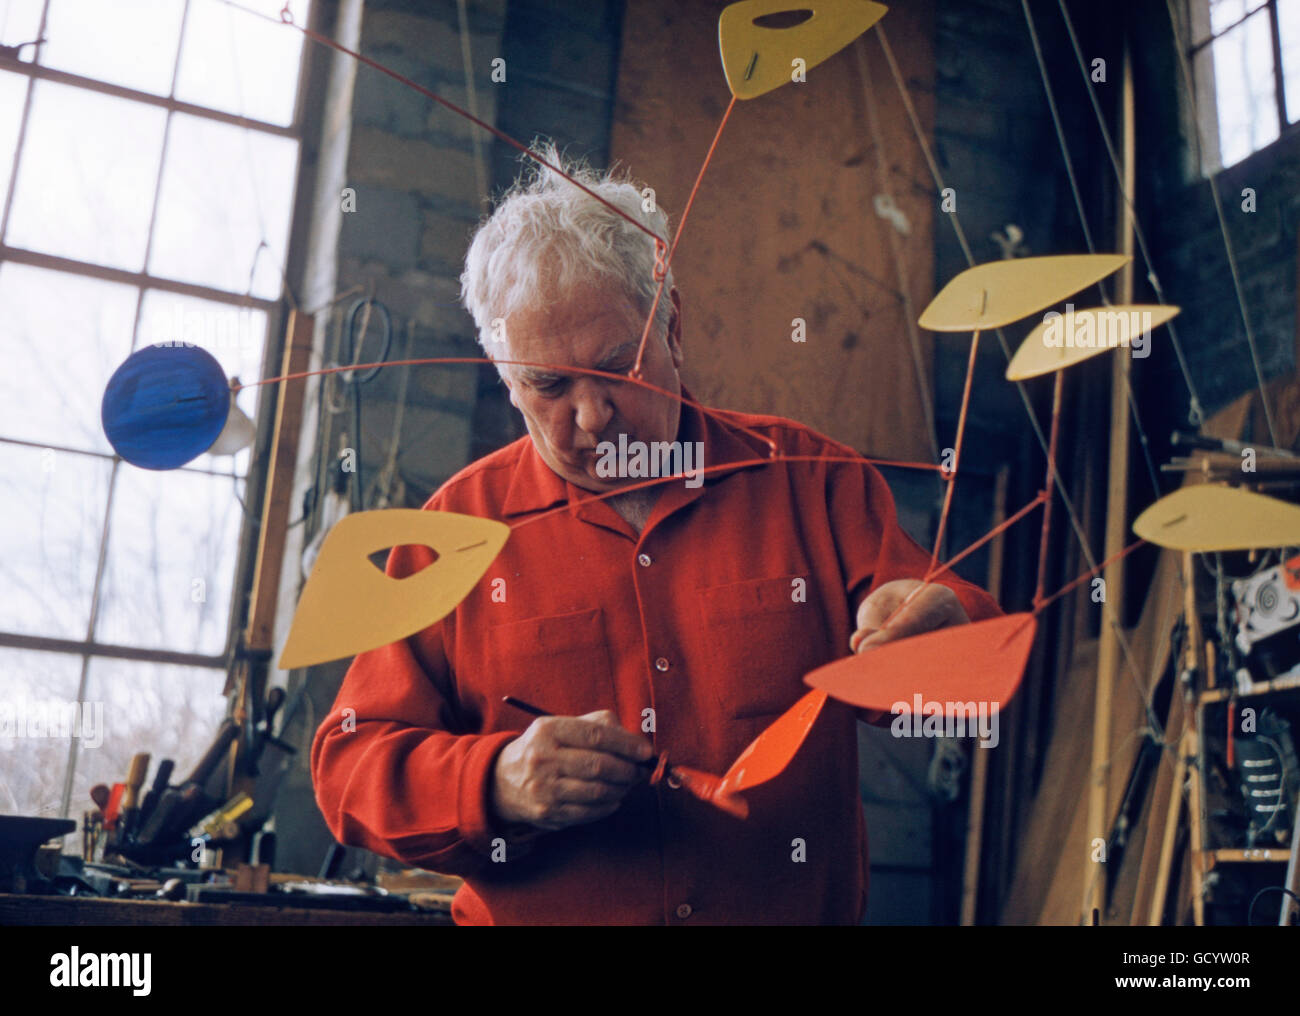 Alexander Calder in his studio, at his home in Roxbury, Connecticut. - Stock Image